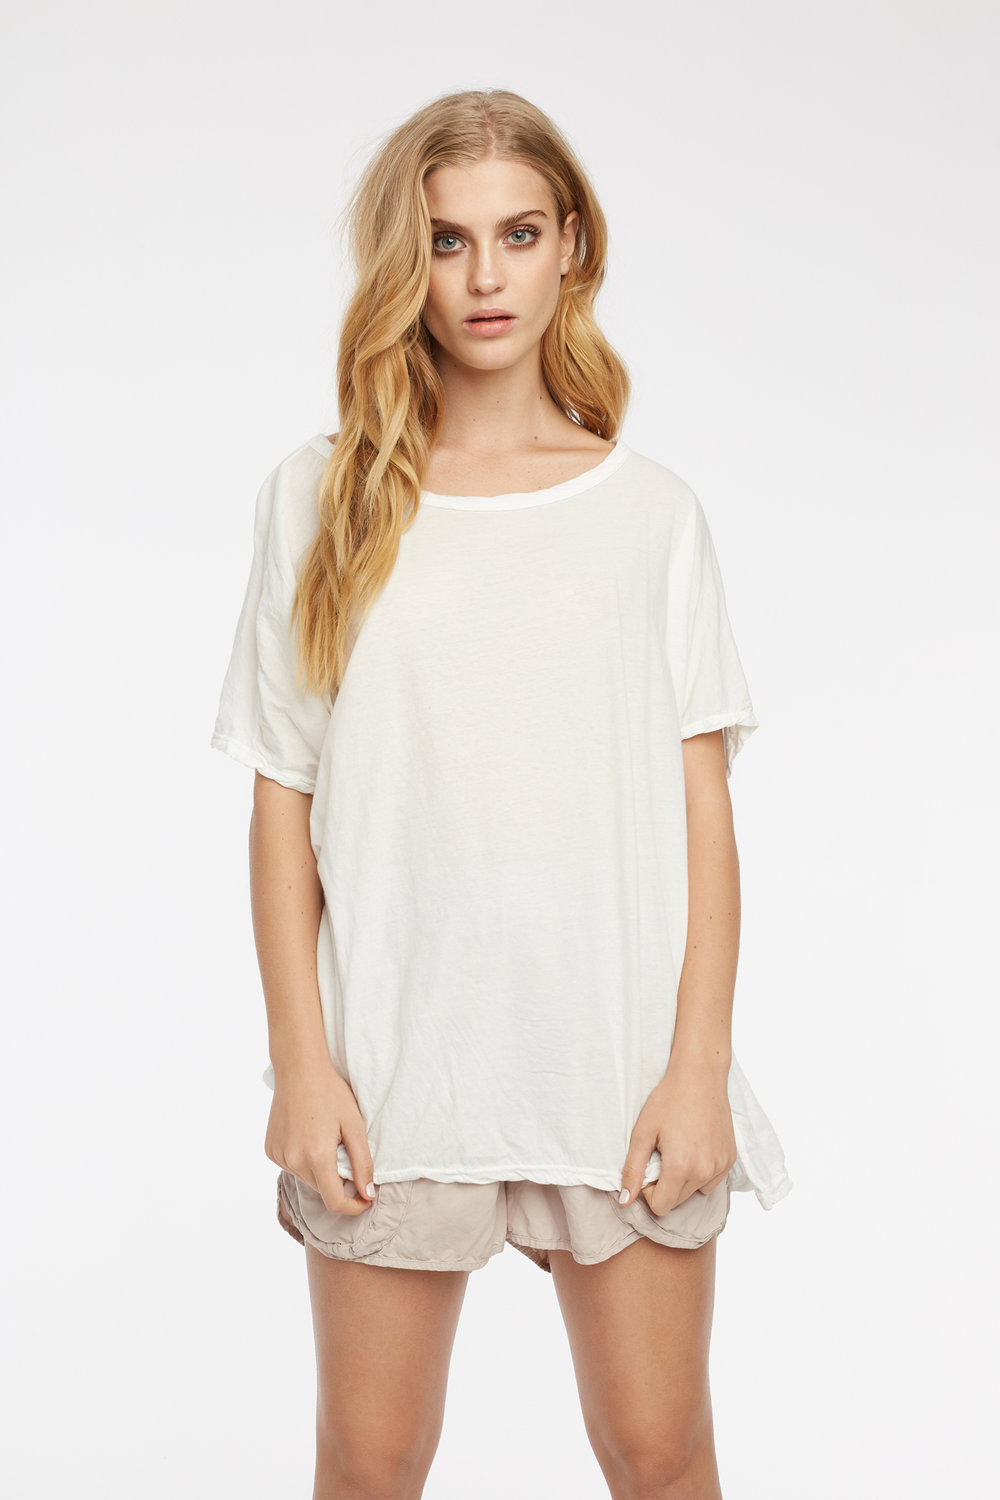 LOOSE TEE BLANC. POCKET SHORT TAUPE